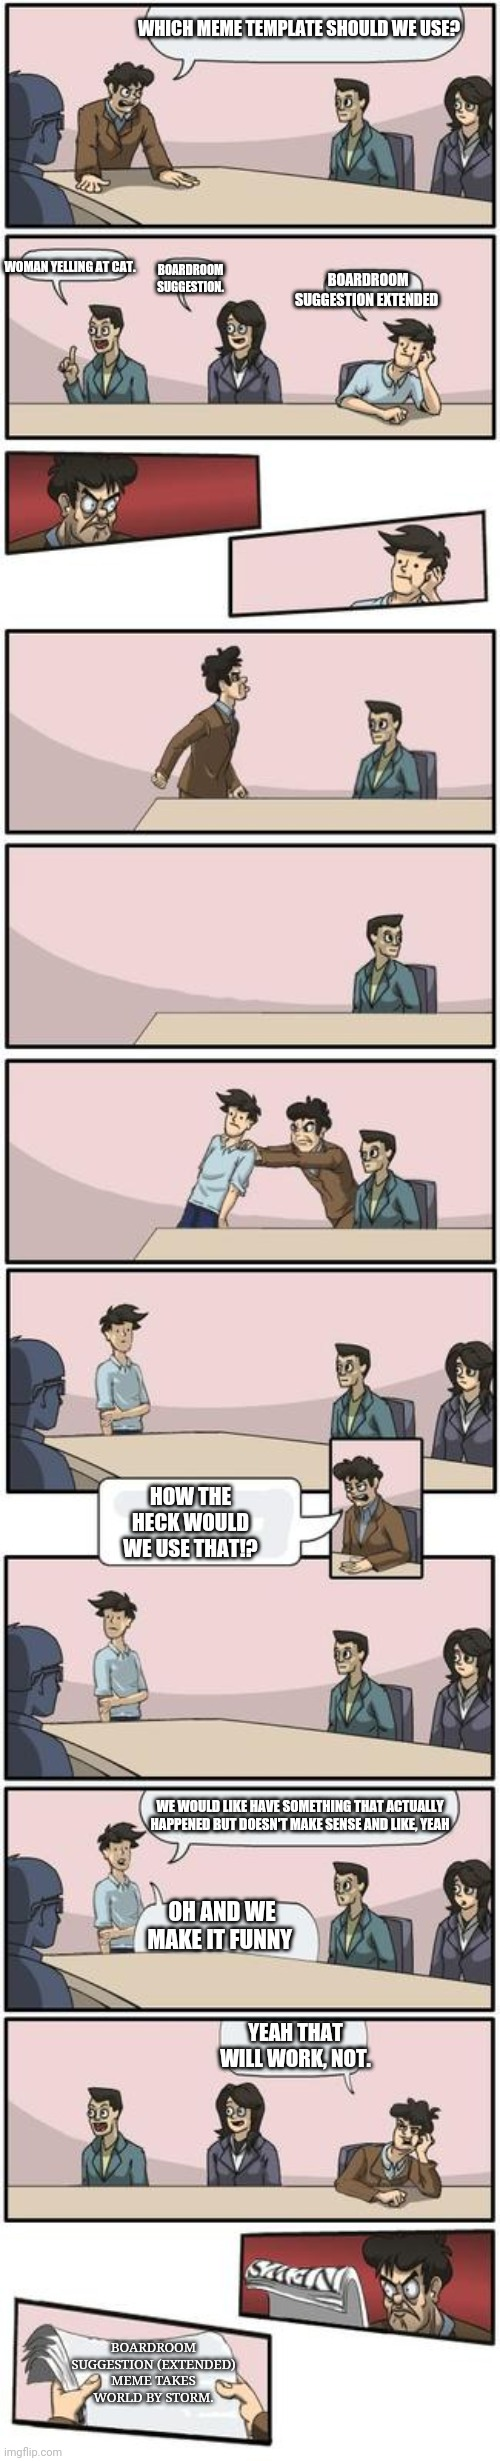 Meme suggestions |  WHICH MEME TEMPLATE SHOULD WE USE? WOMAN YELLING AT CAT. BOARDROOM SUGGESTION. BOARDROOM SUGGESTION EXTENDED; HOW THE HECK WOULD WE USE THAT!? WE WOULD LIKE HAVE SOMETHING THAT ACTUALLY HAPPENED BUT DOESN'T MAKE SENSE AND LIKE, YEAH; OH AND WE MAKE IT FUNNY; YEAH THAT WILL WORK, NOT. BOARDROOM SUGGESTION (EXTENDED) MEME TAKES WORLD BY STORM. | image tagged in boardroom suggestion extended,boardroom suggestion,funny | made w/ Imgflip meme maker